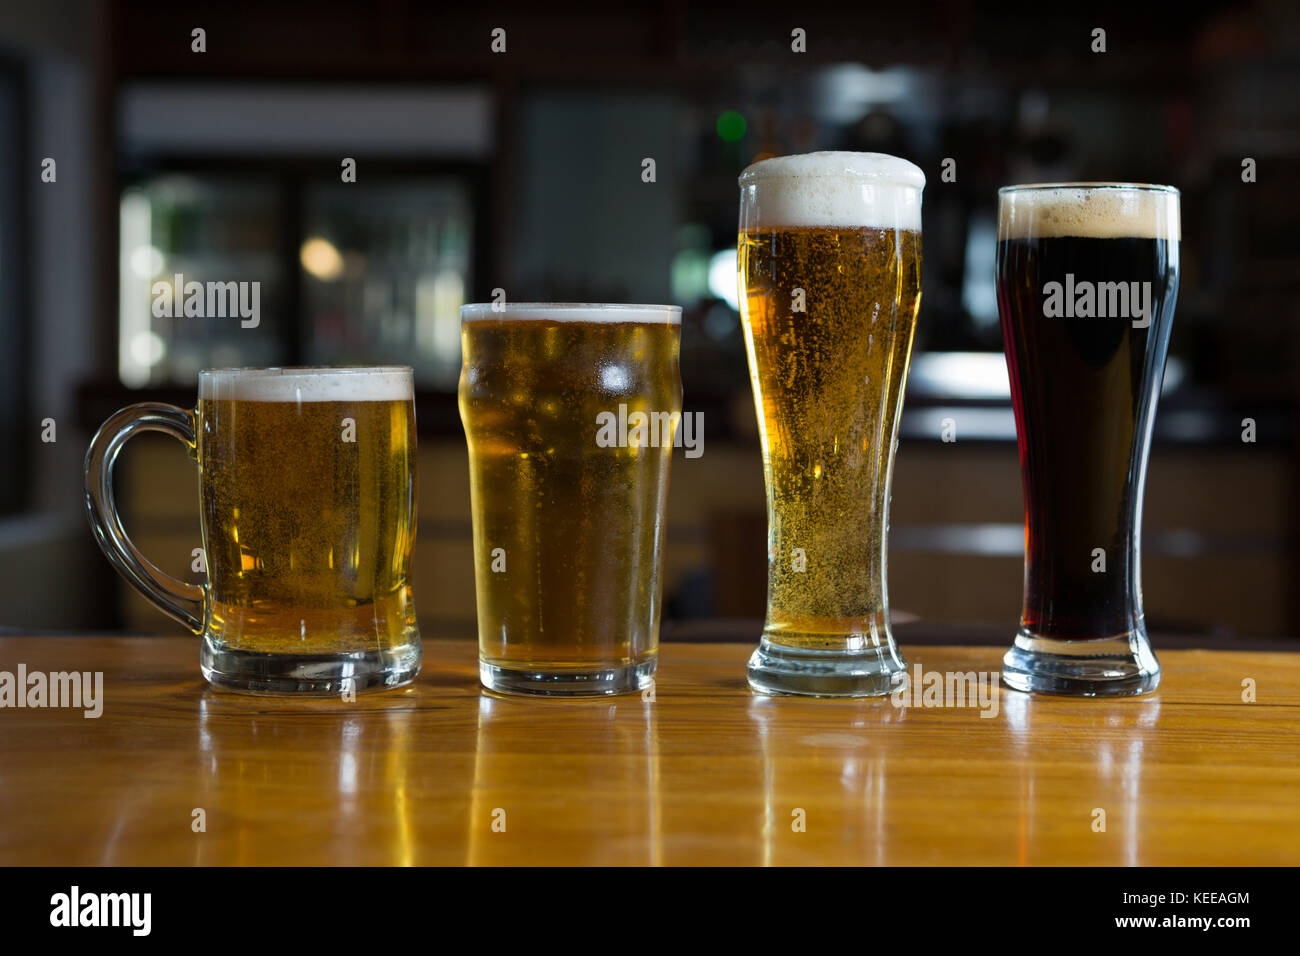 Close-up of beer glasses on the counter in bar - Stock Image